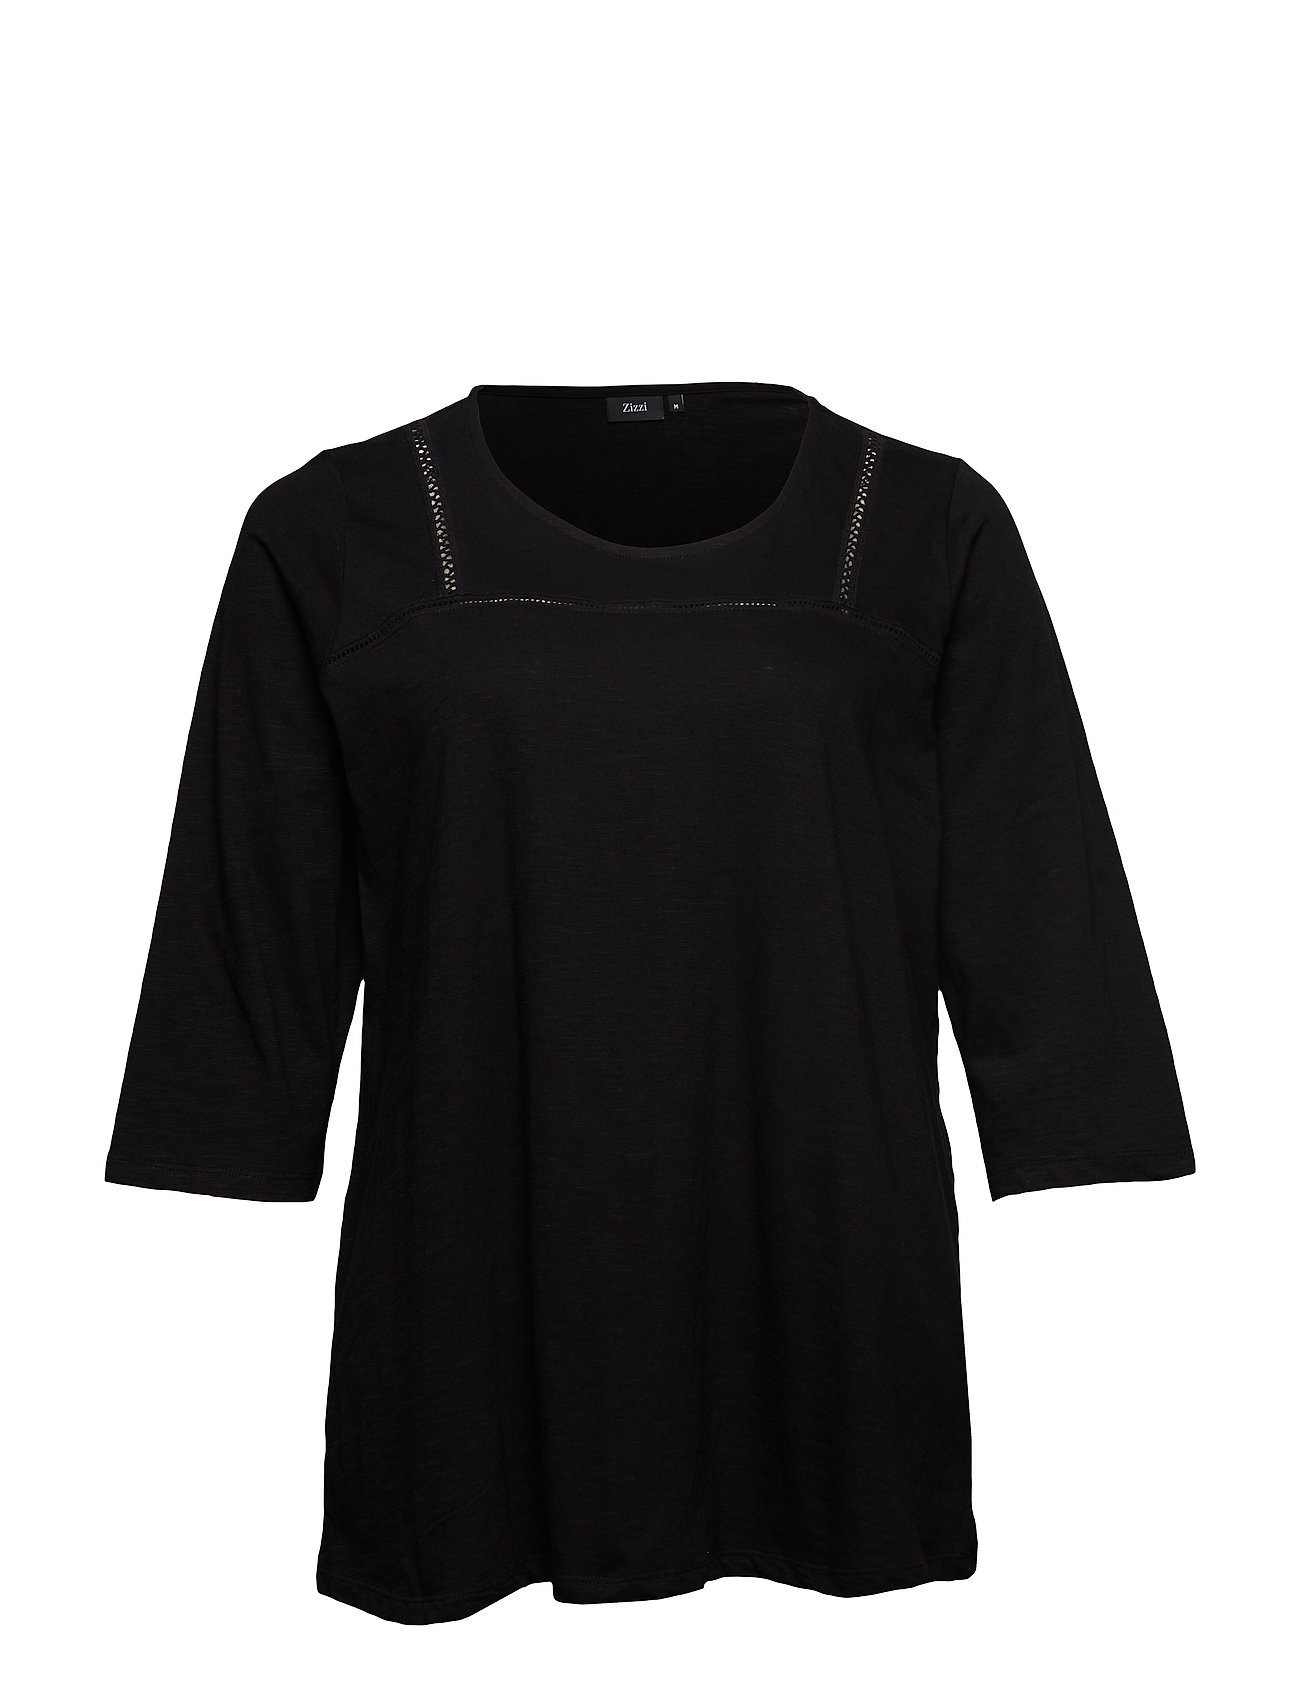 Zizzi MHOLLY, 3/4, TOP - BLACK